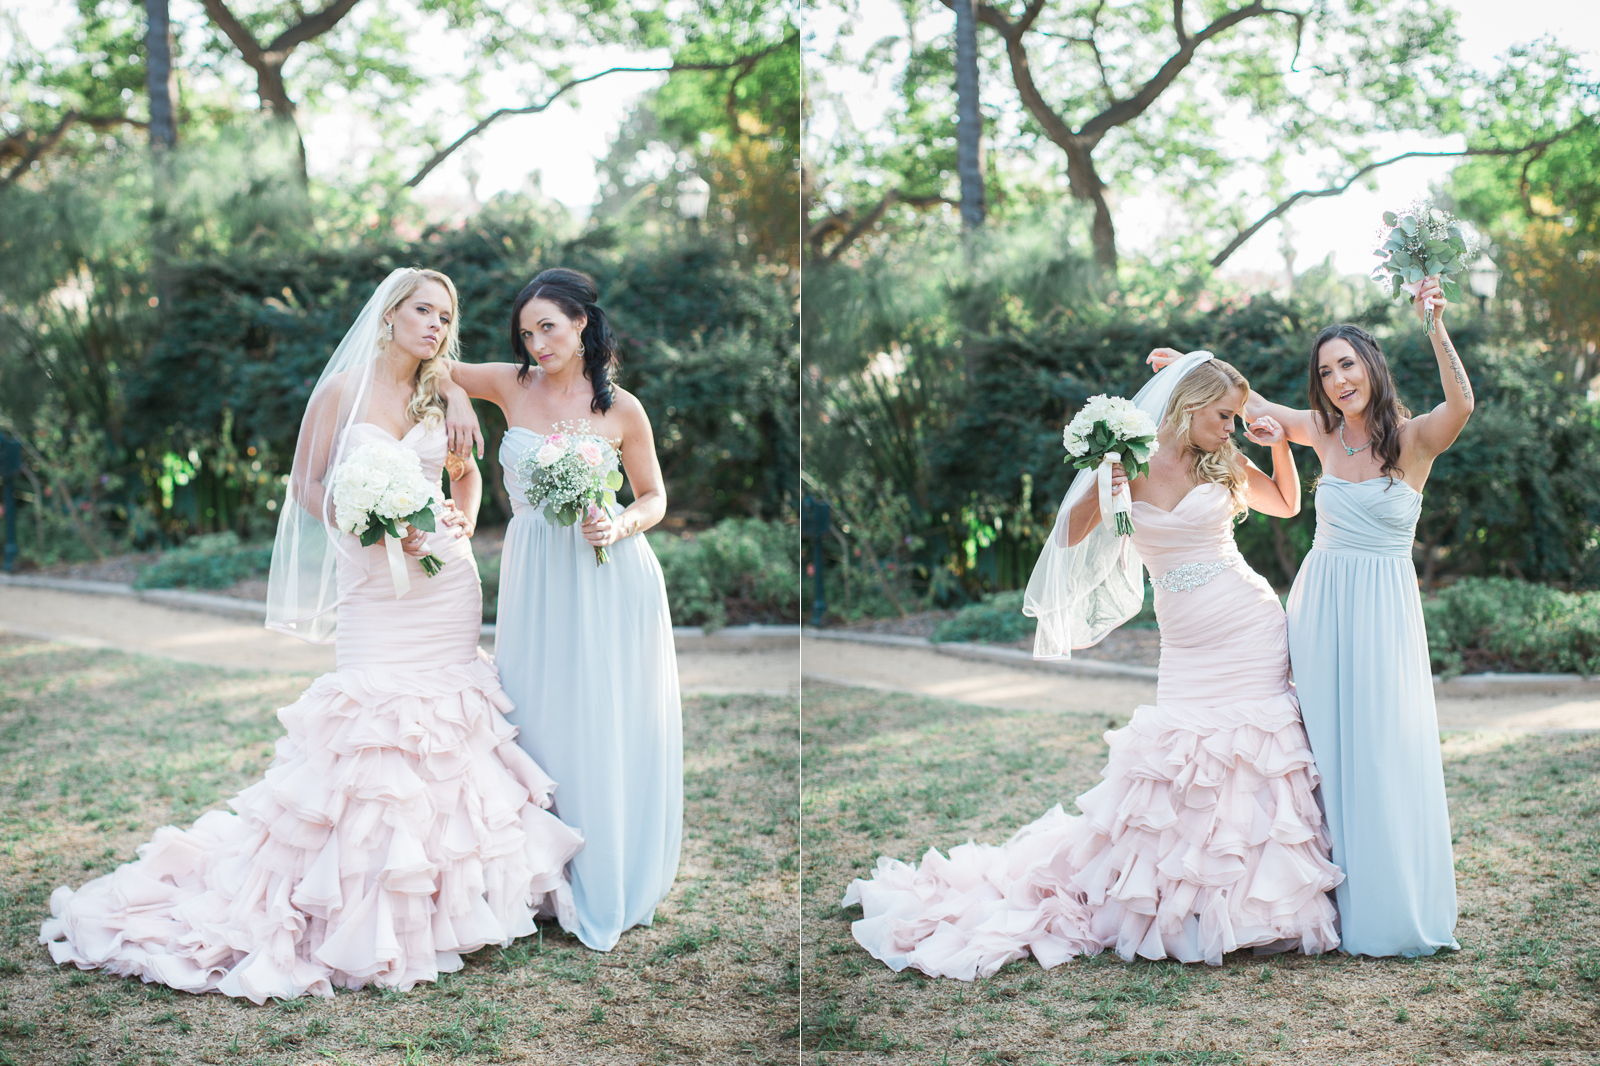 Bride having fun with Bridesmaids at Alice Keck park on her wedding day